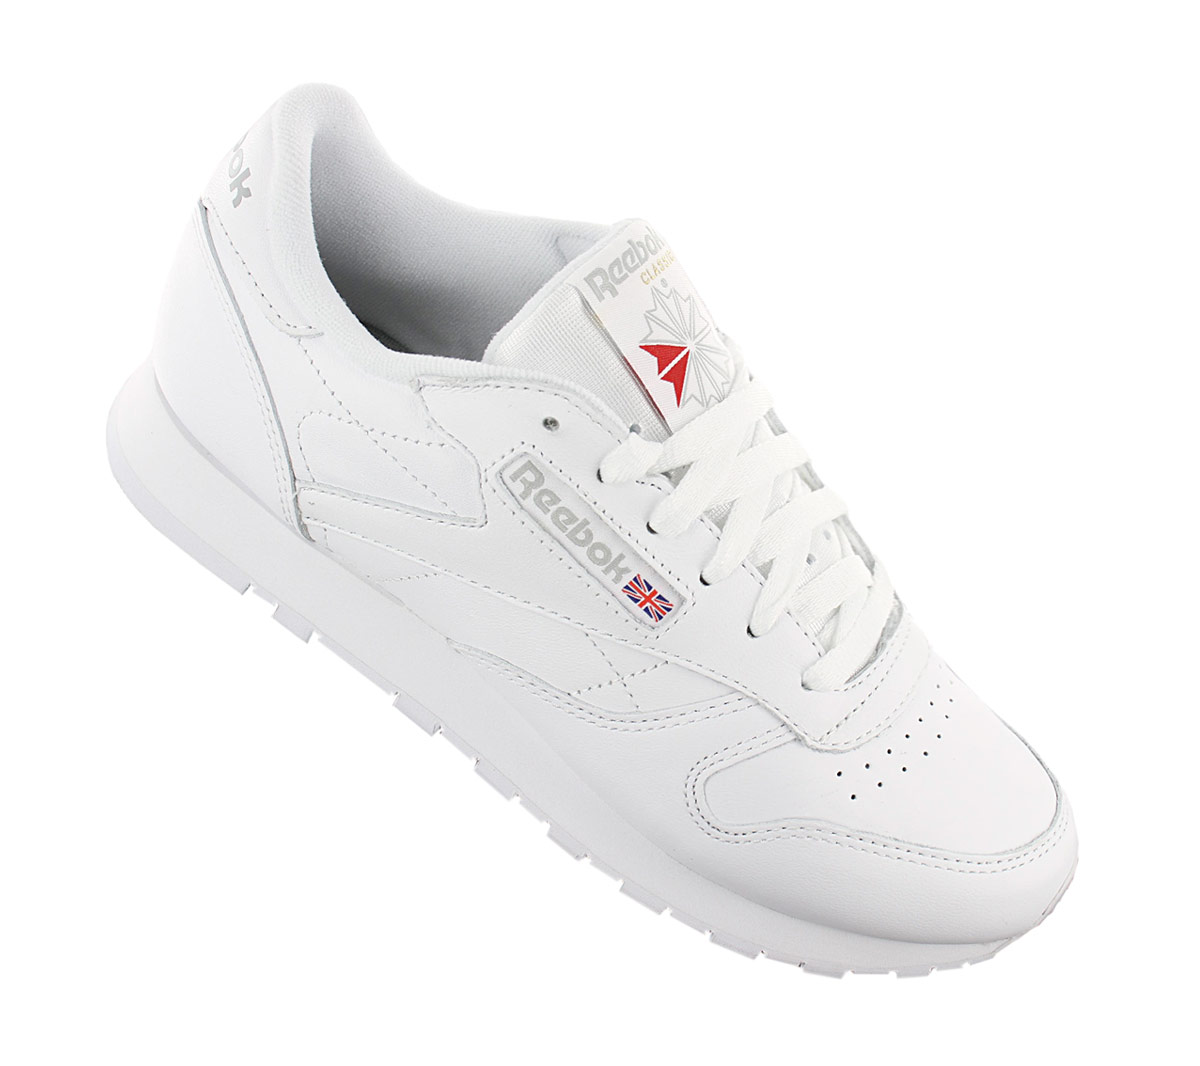 reebok classic leather damen sneaker neu damenschuhe weiss schwarz leder schuhe ebay. Black Bedroom Furniture Sets. Home Design Ideas